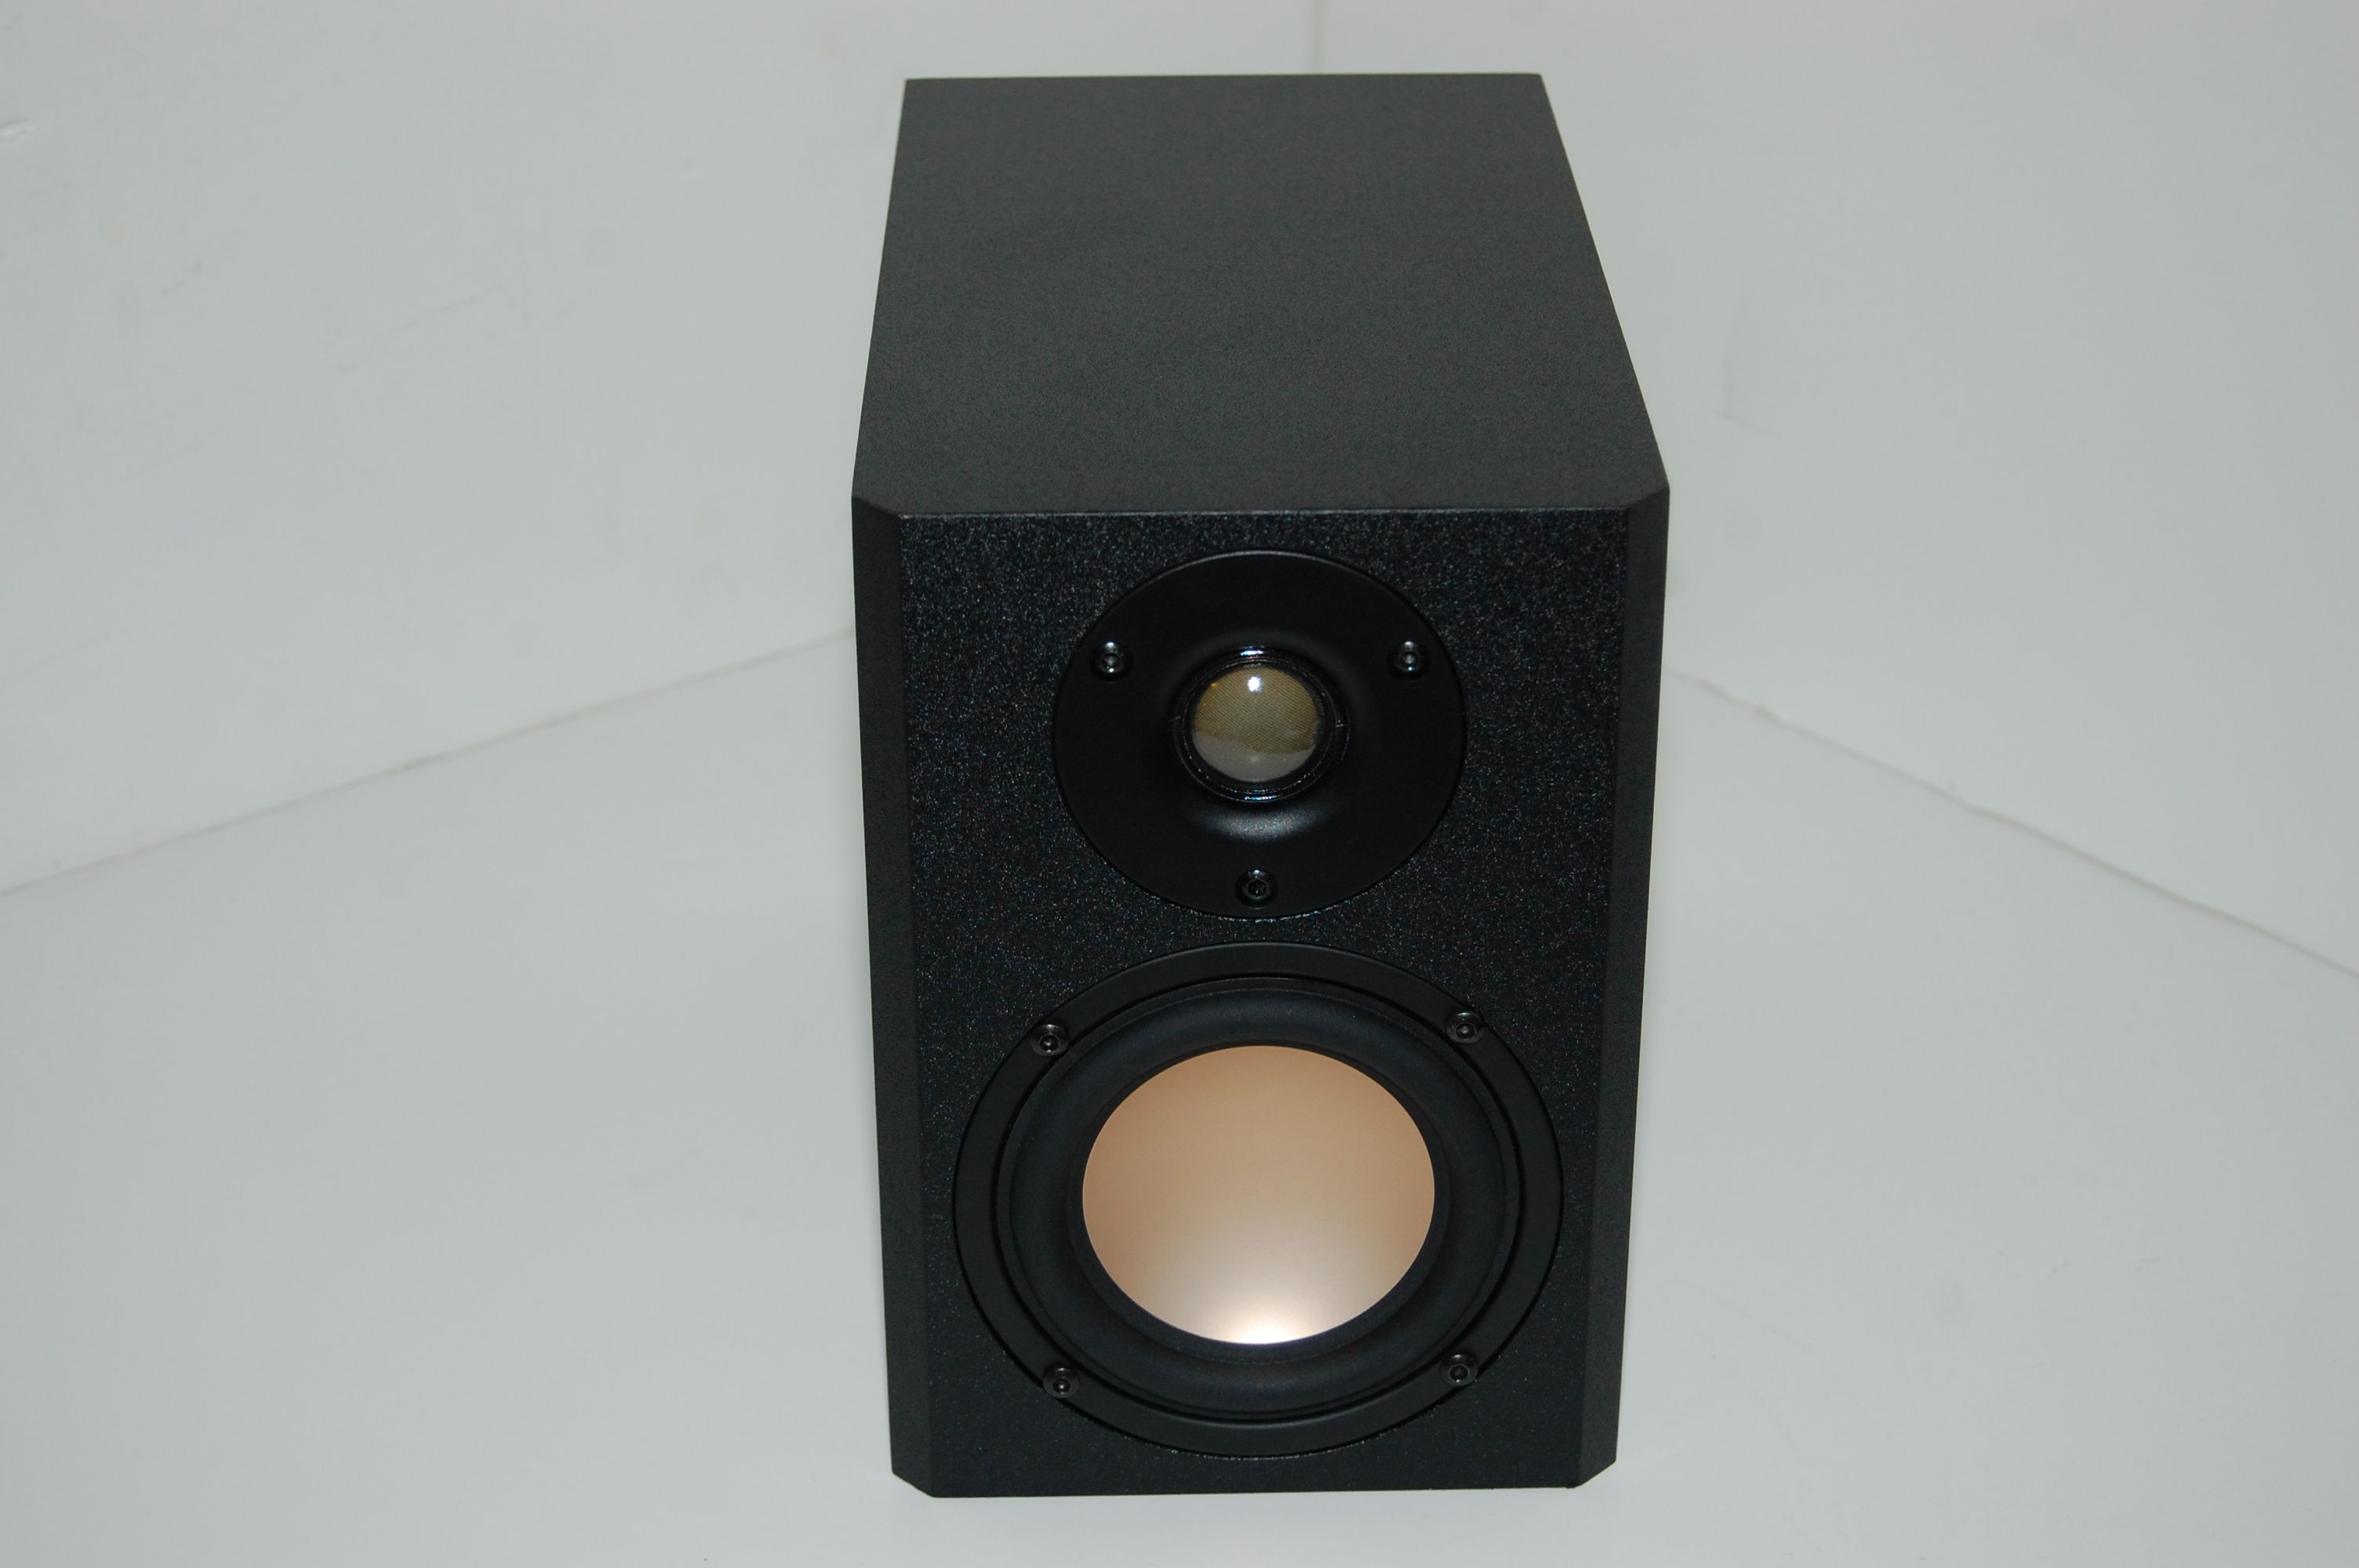 b_0_0_0_00_images_stories_ScytheRevBSpeakers_DSC_0713.JPG